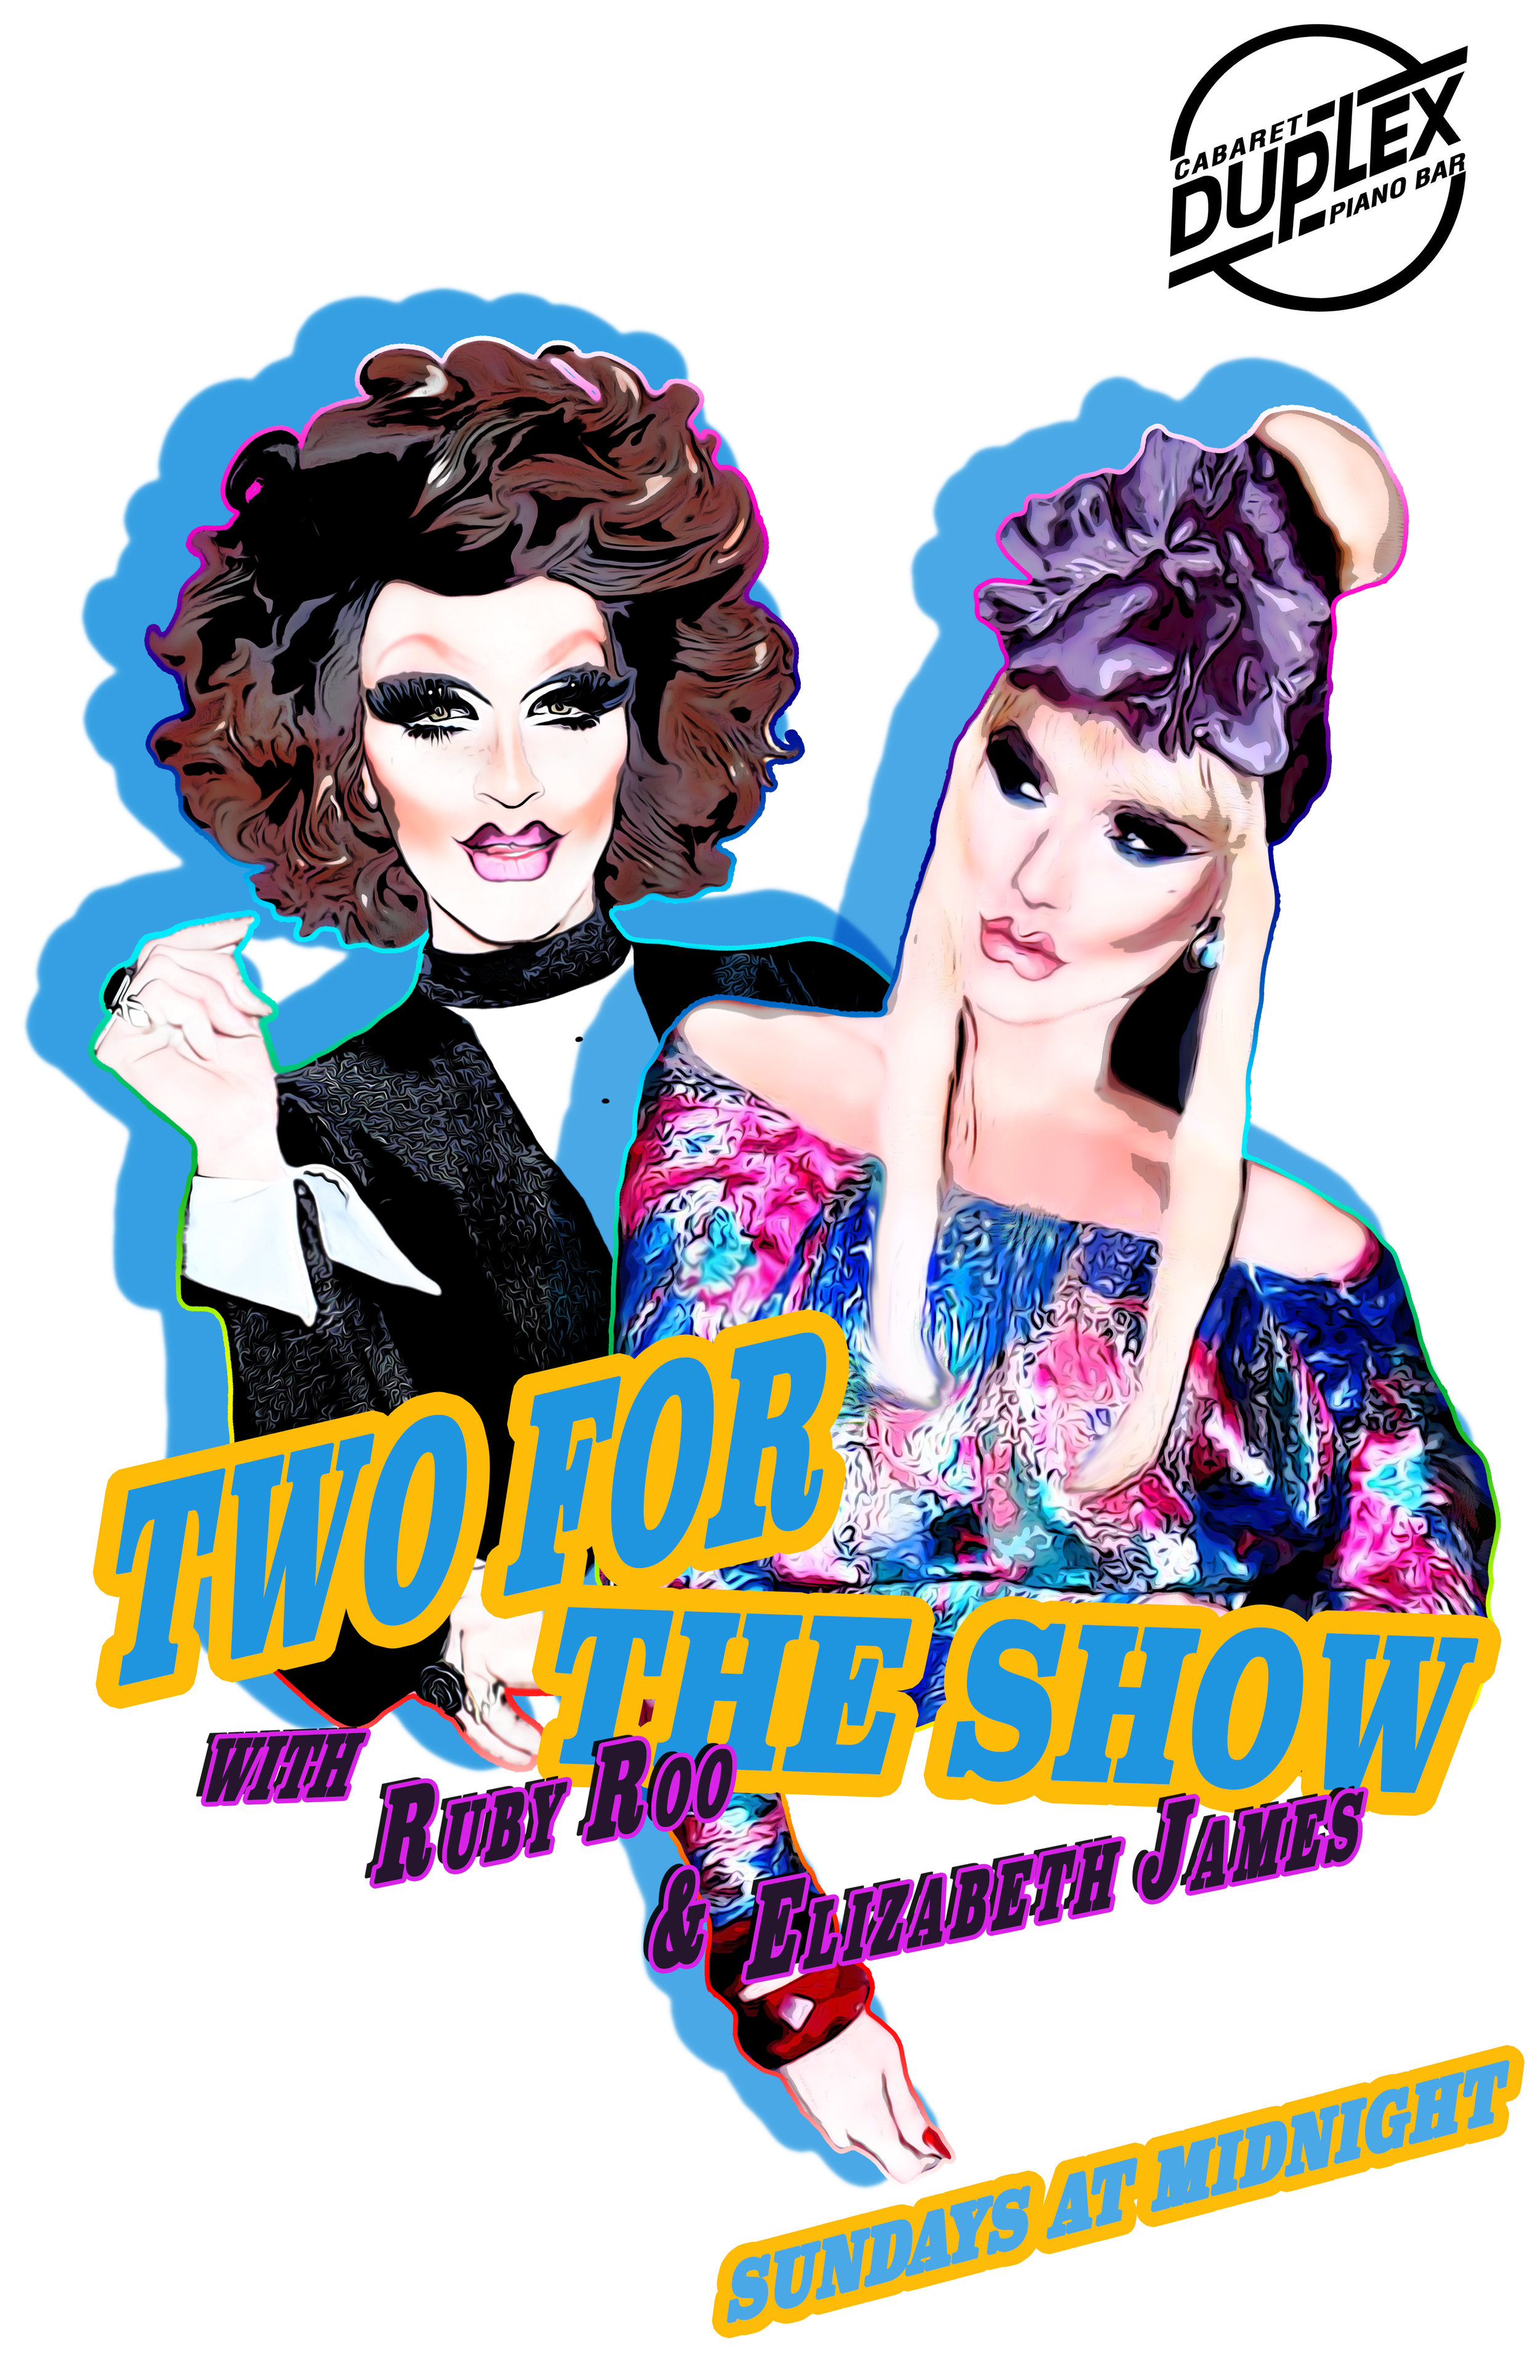 TWO FOR THE SHOW WITH RUBY ROO AND ELIZABETH JAMES.jpg